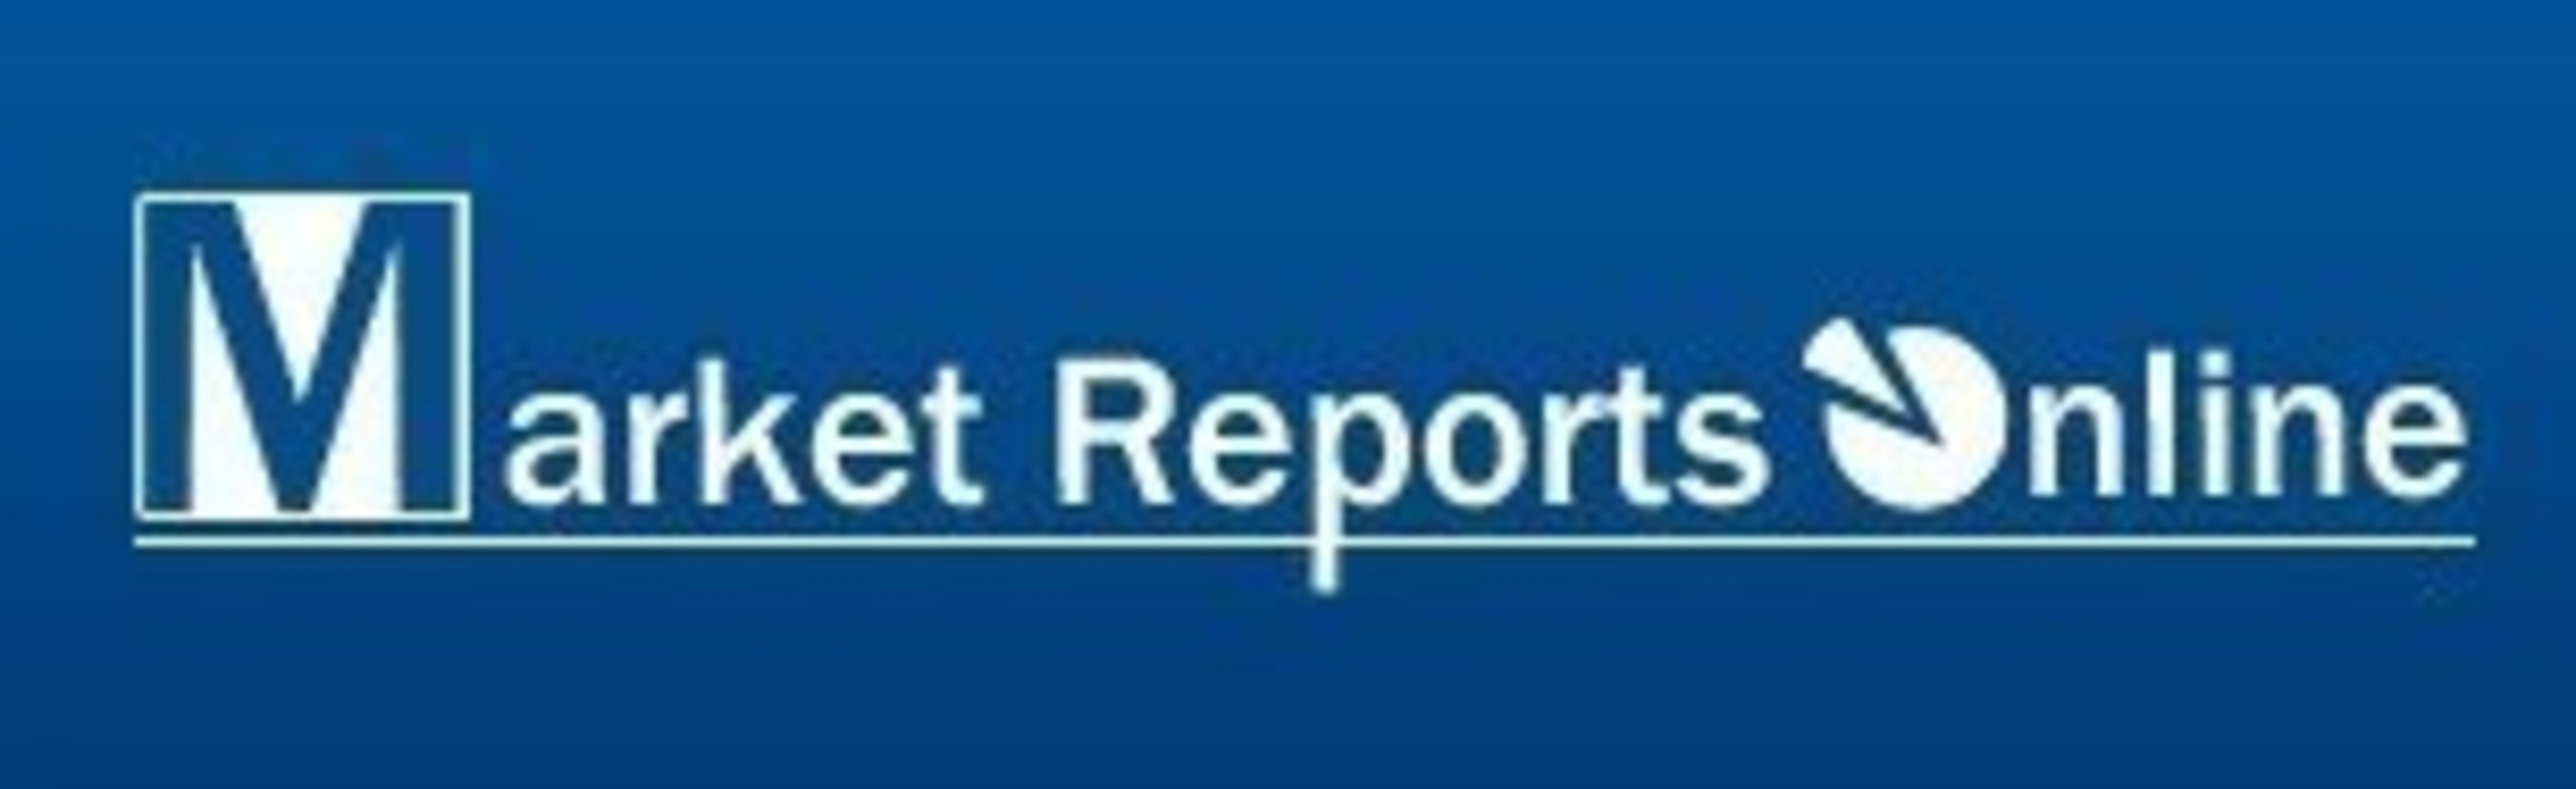 Air Purifier Market - Share, Size, Growth And Analysis in New Report Now Available at MarketReportsOnline.com